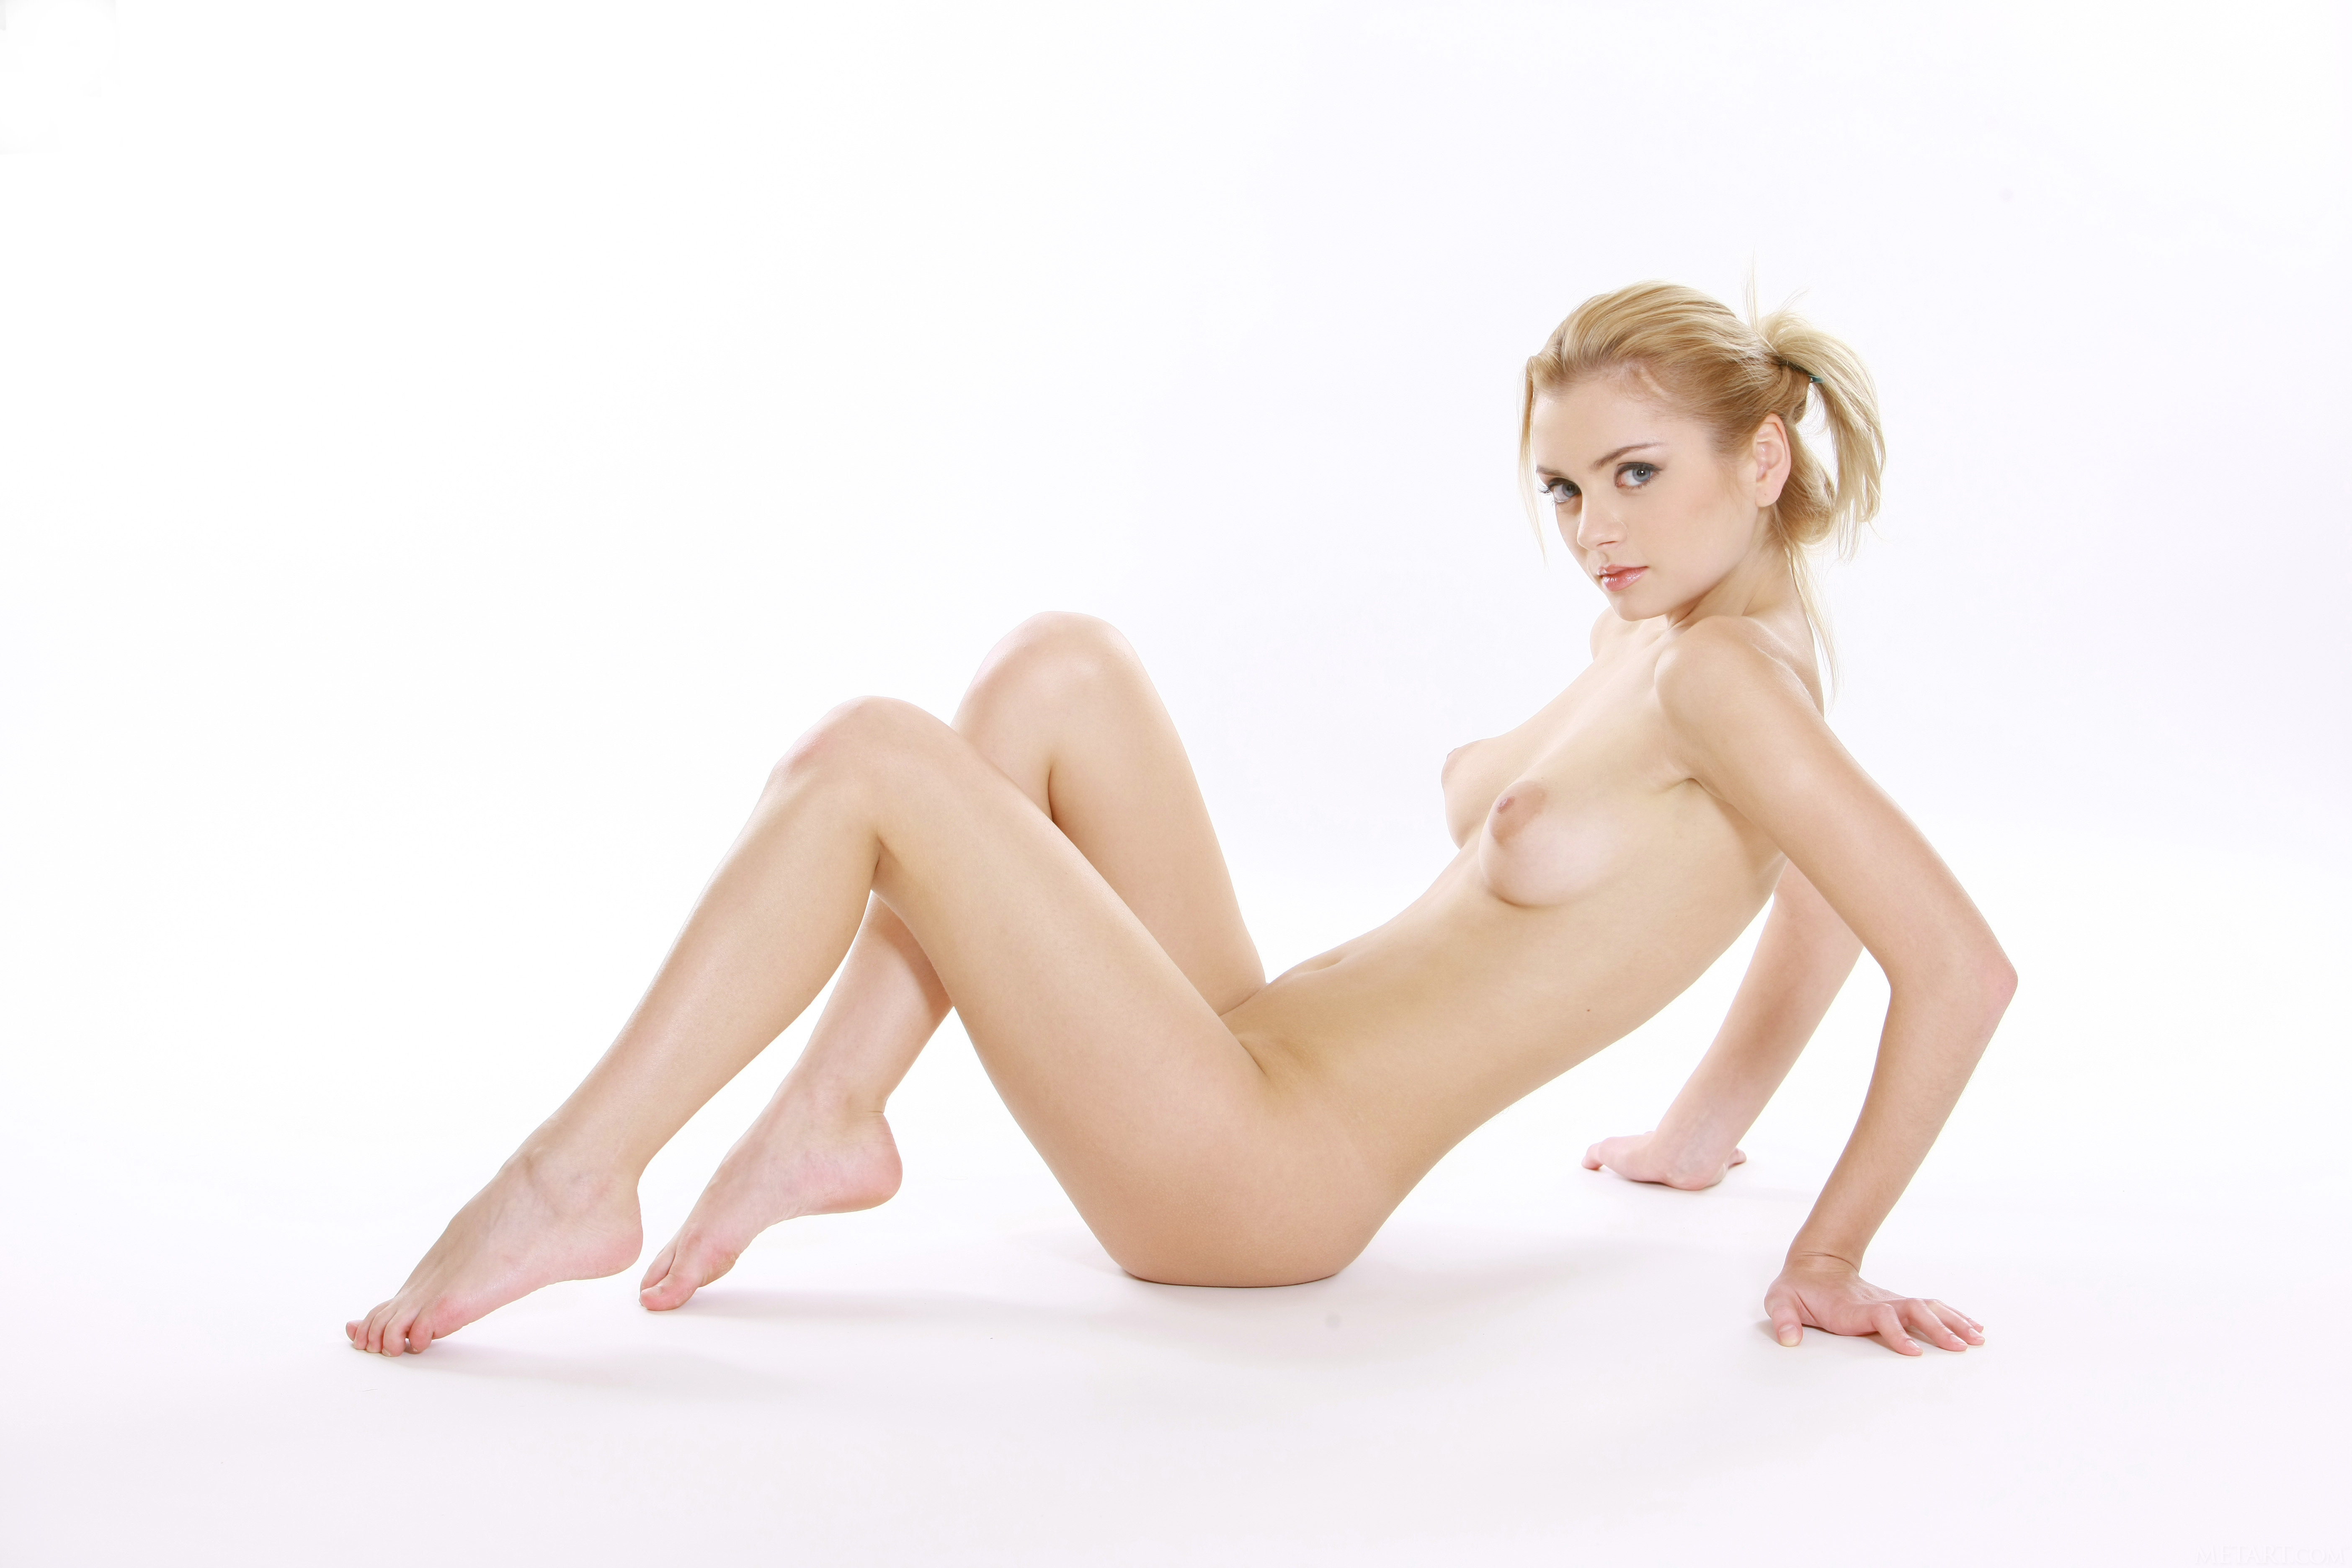 Wallpaper Sabrina D, Blonde, Legs, Look, Beauty, Nude, Ass -2881